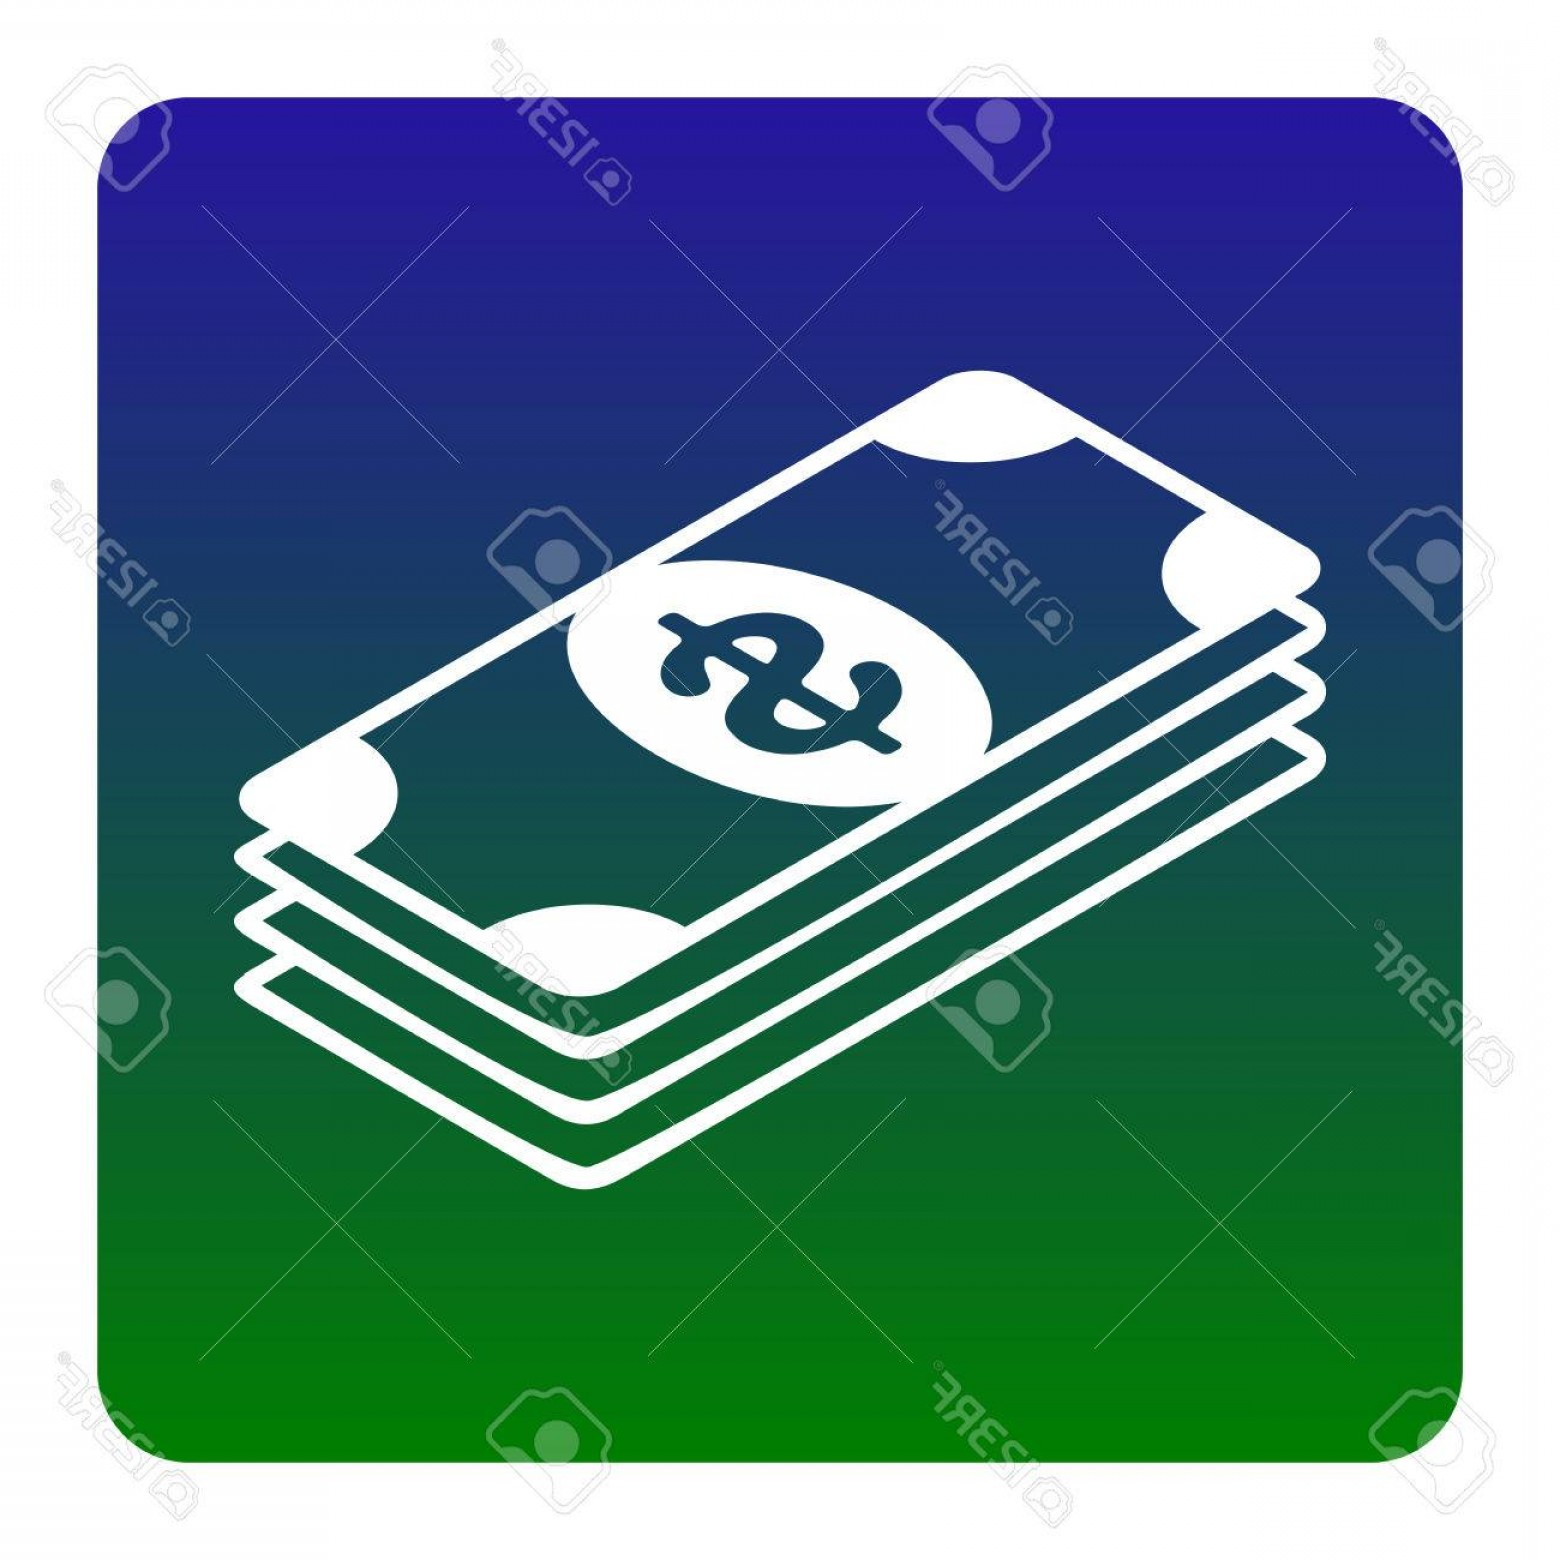 Blue Dollar Sign Vector: Photostock Vector Bank Note Dollar Sign Vector White Icon At Green Blue Gradient Square With Rounded Corners On White